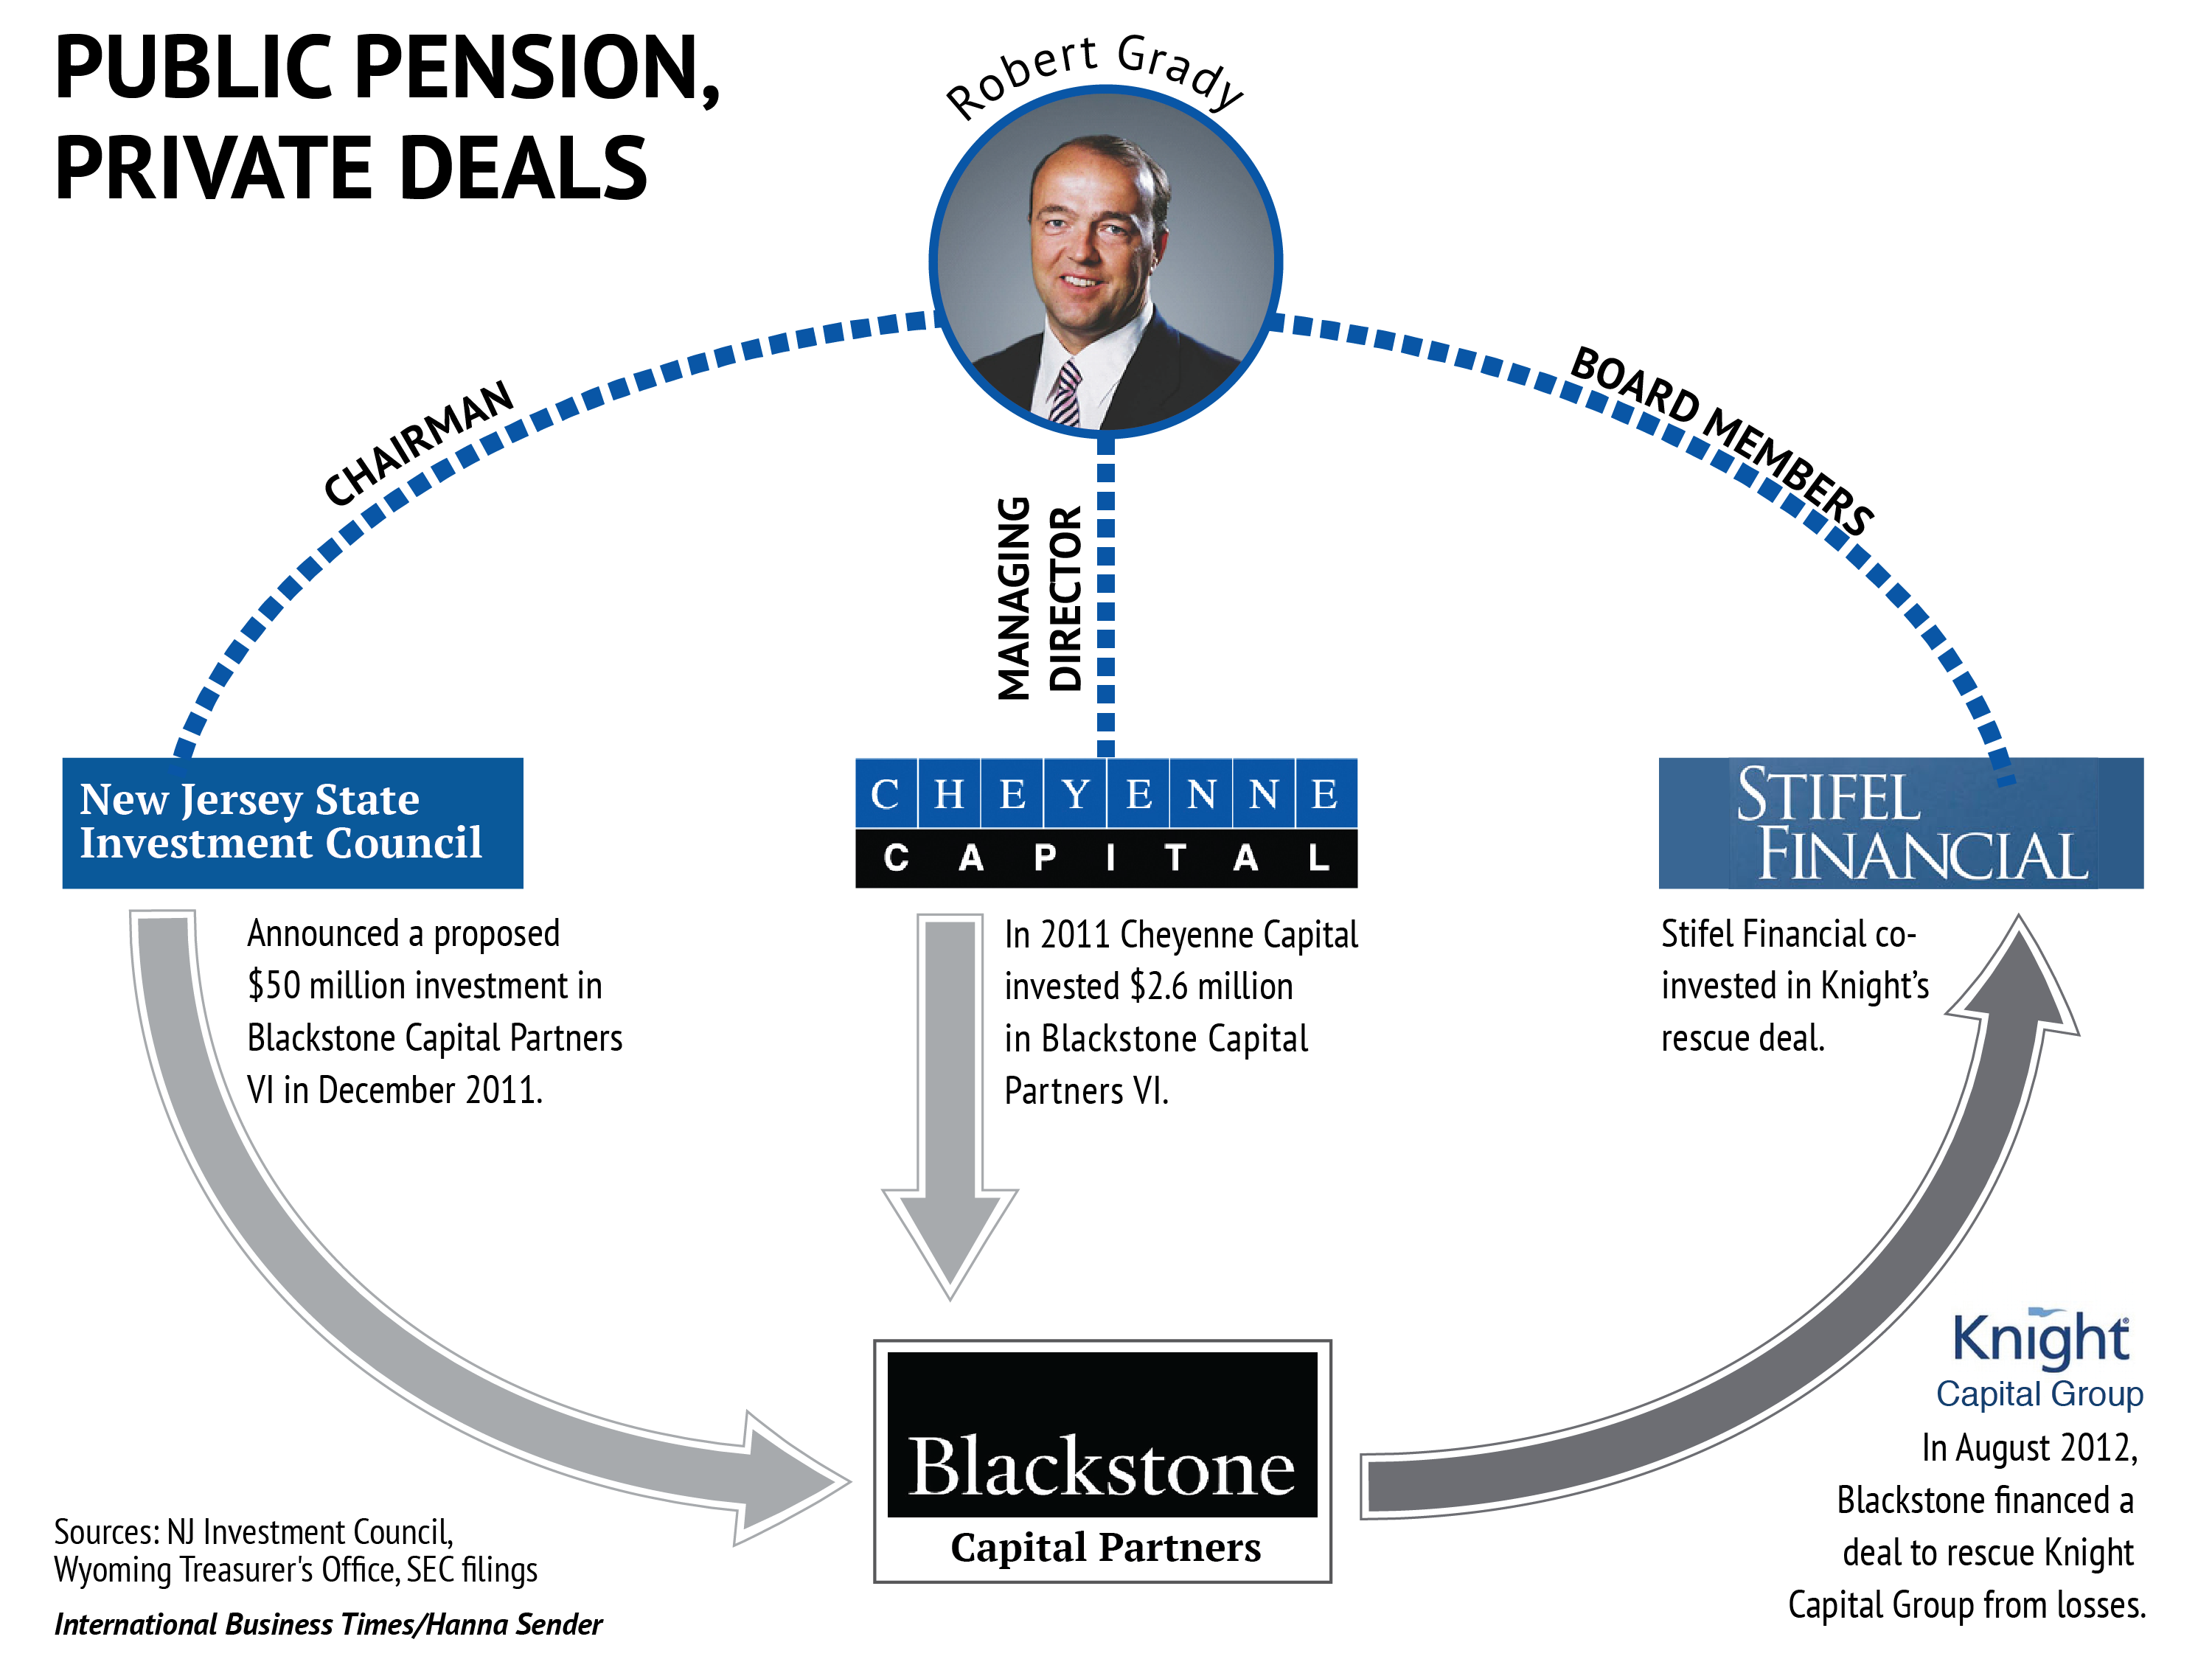 Christie's Pension Overseer Invested New Jersey Money In